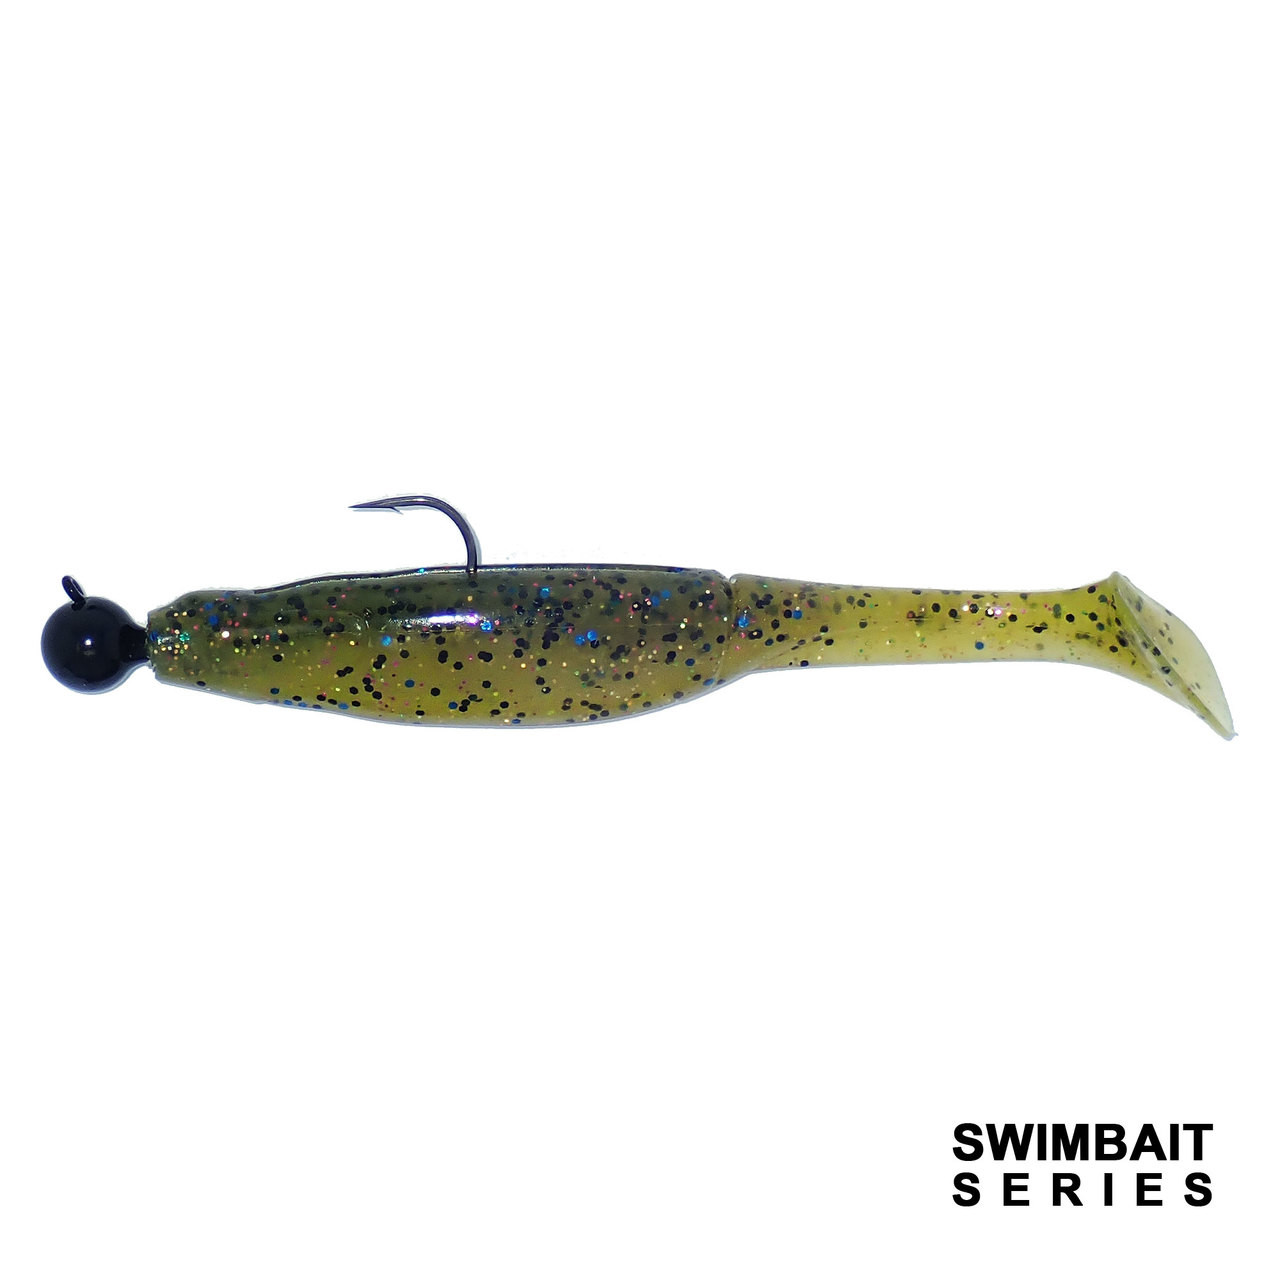 "SteelShad Swimbait 4.5"" Bluegill"